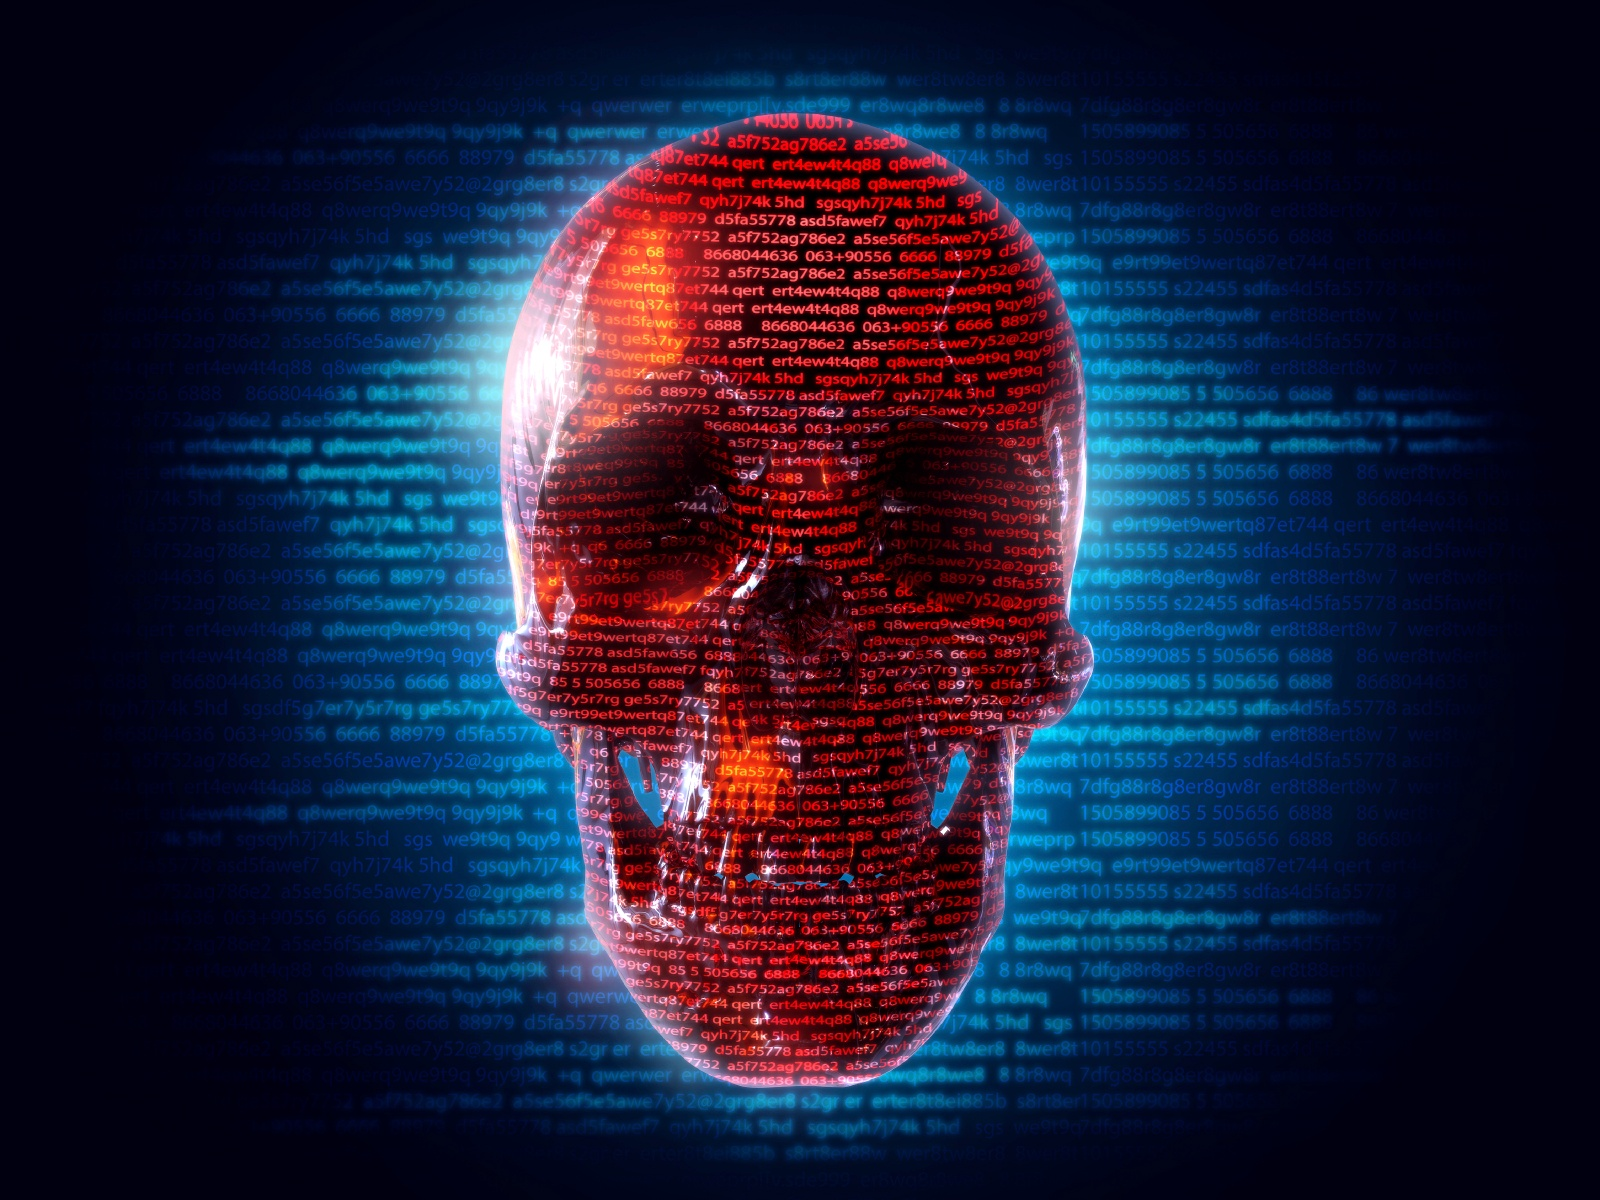 Petya: A New Ransomware Threat